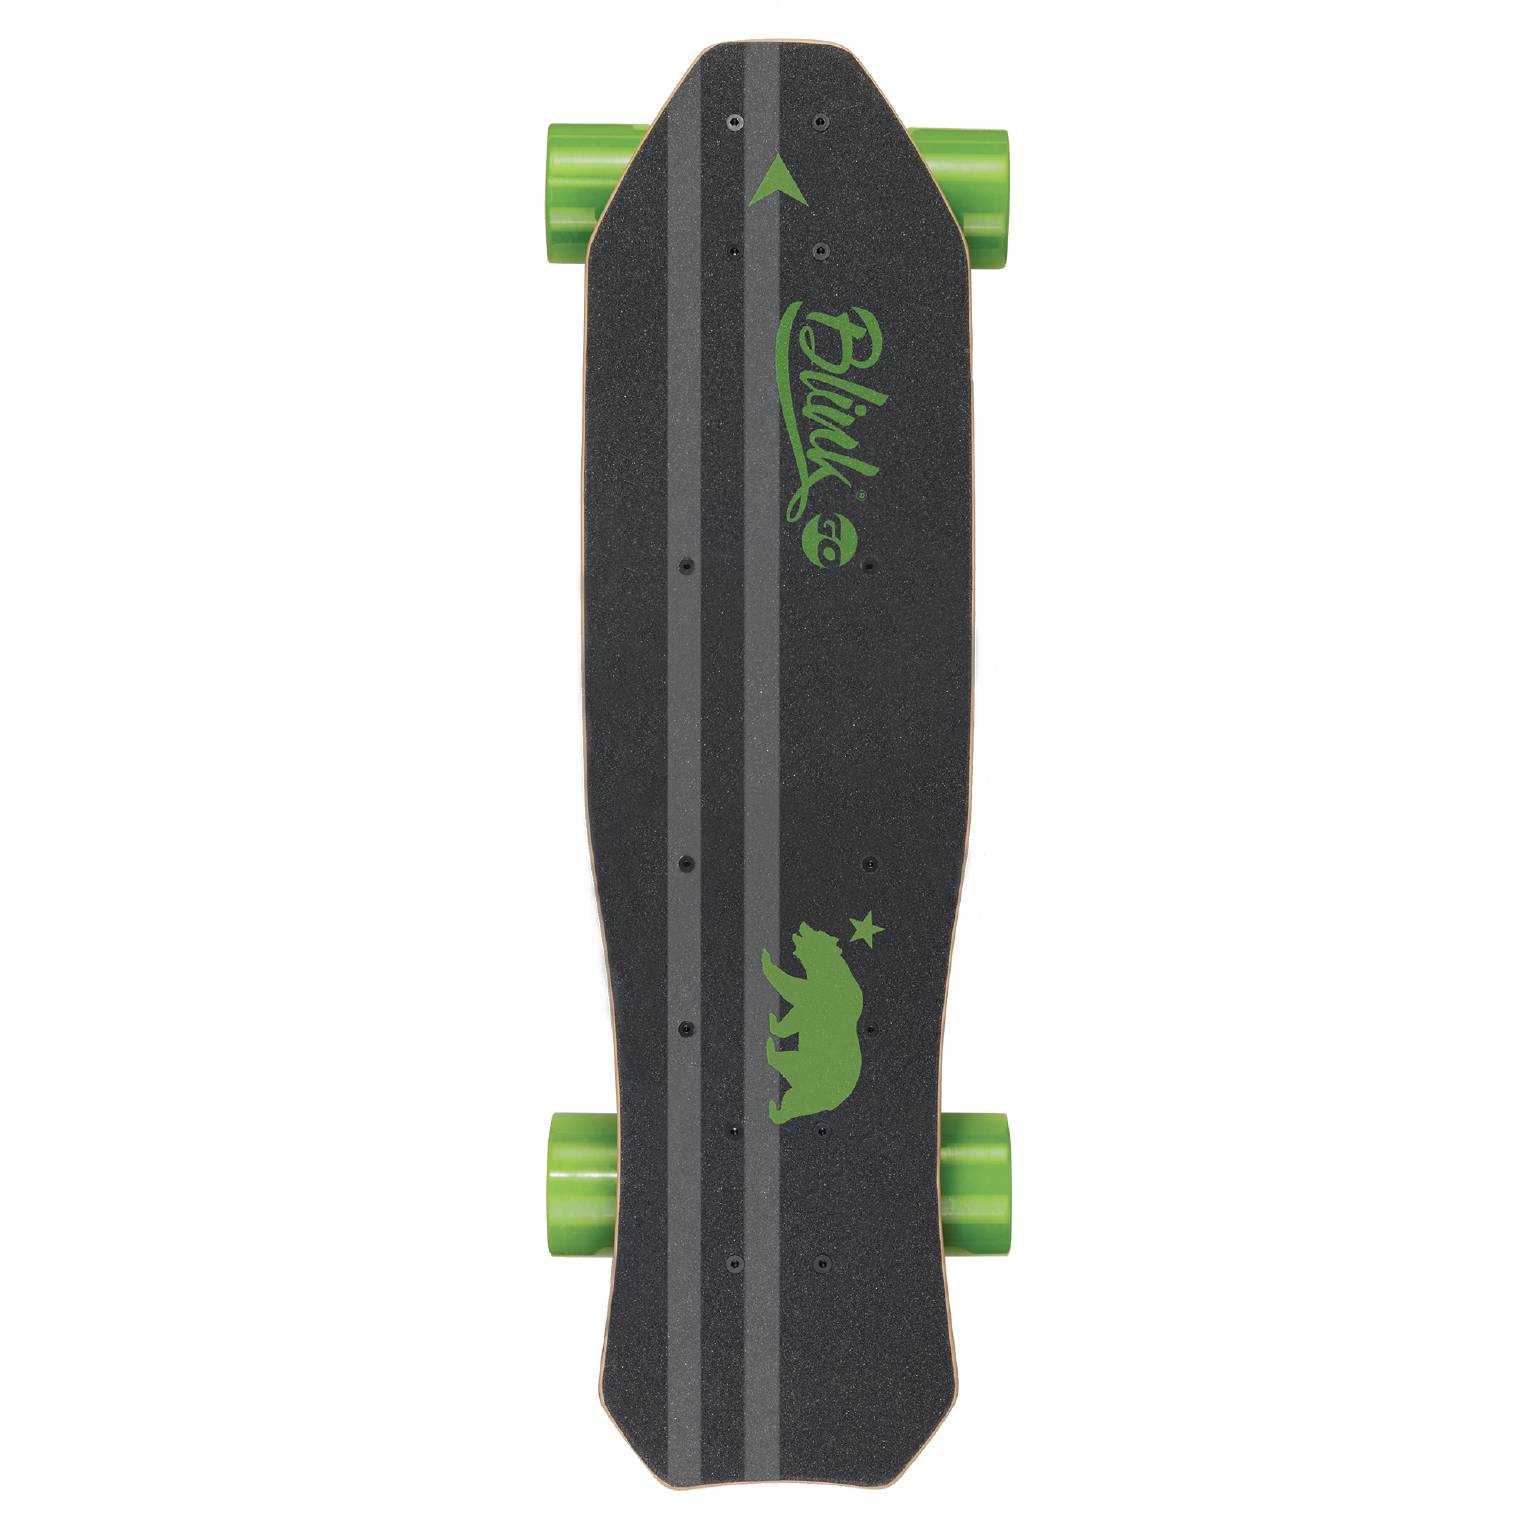 Image of Blink Go Electric Skateboard